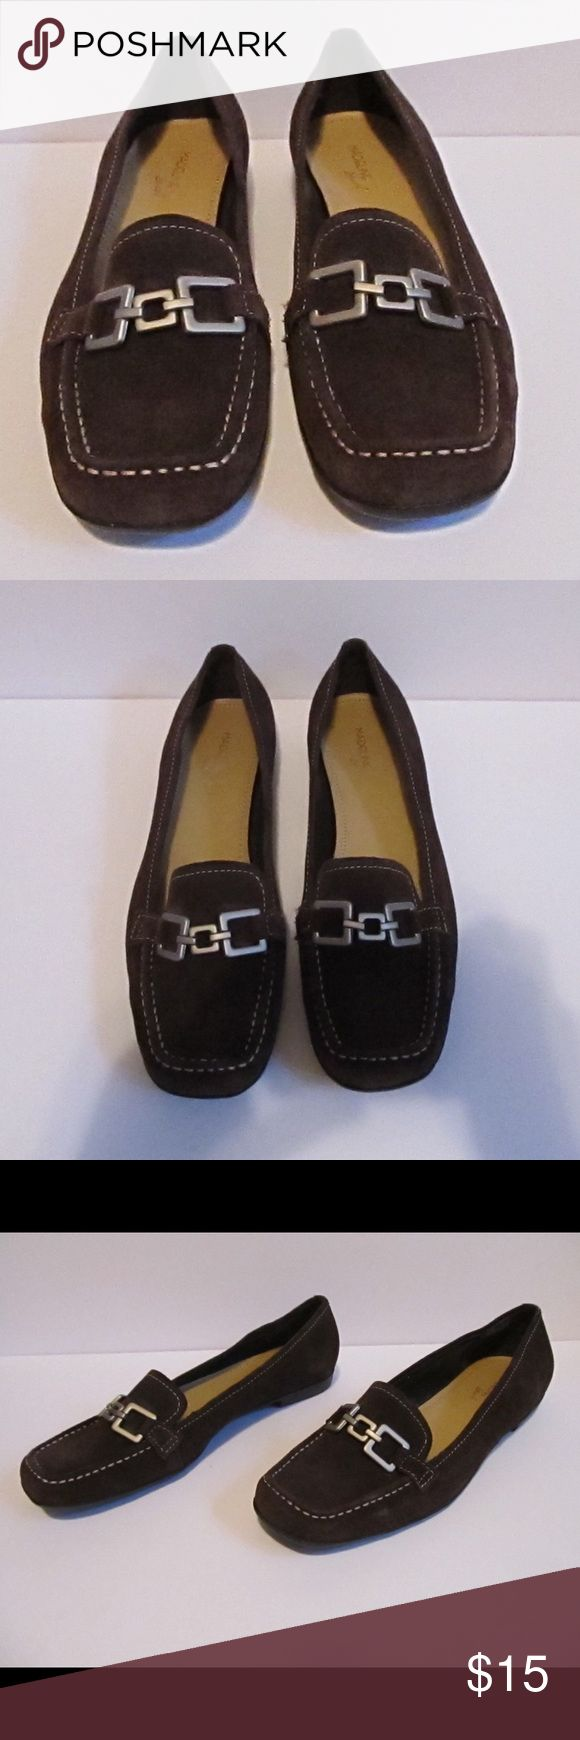 New Madeline Stuart Brown Suede Loafers Great condition only been worn around the house! Super comfy and can be worn with so many outfits! No flaws! Ready to ship and bundle! Size 11 Madeline Stuart Shoes Flats & Loafers